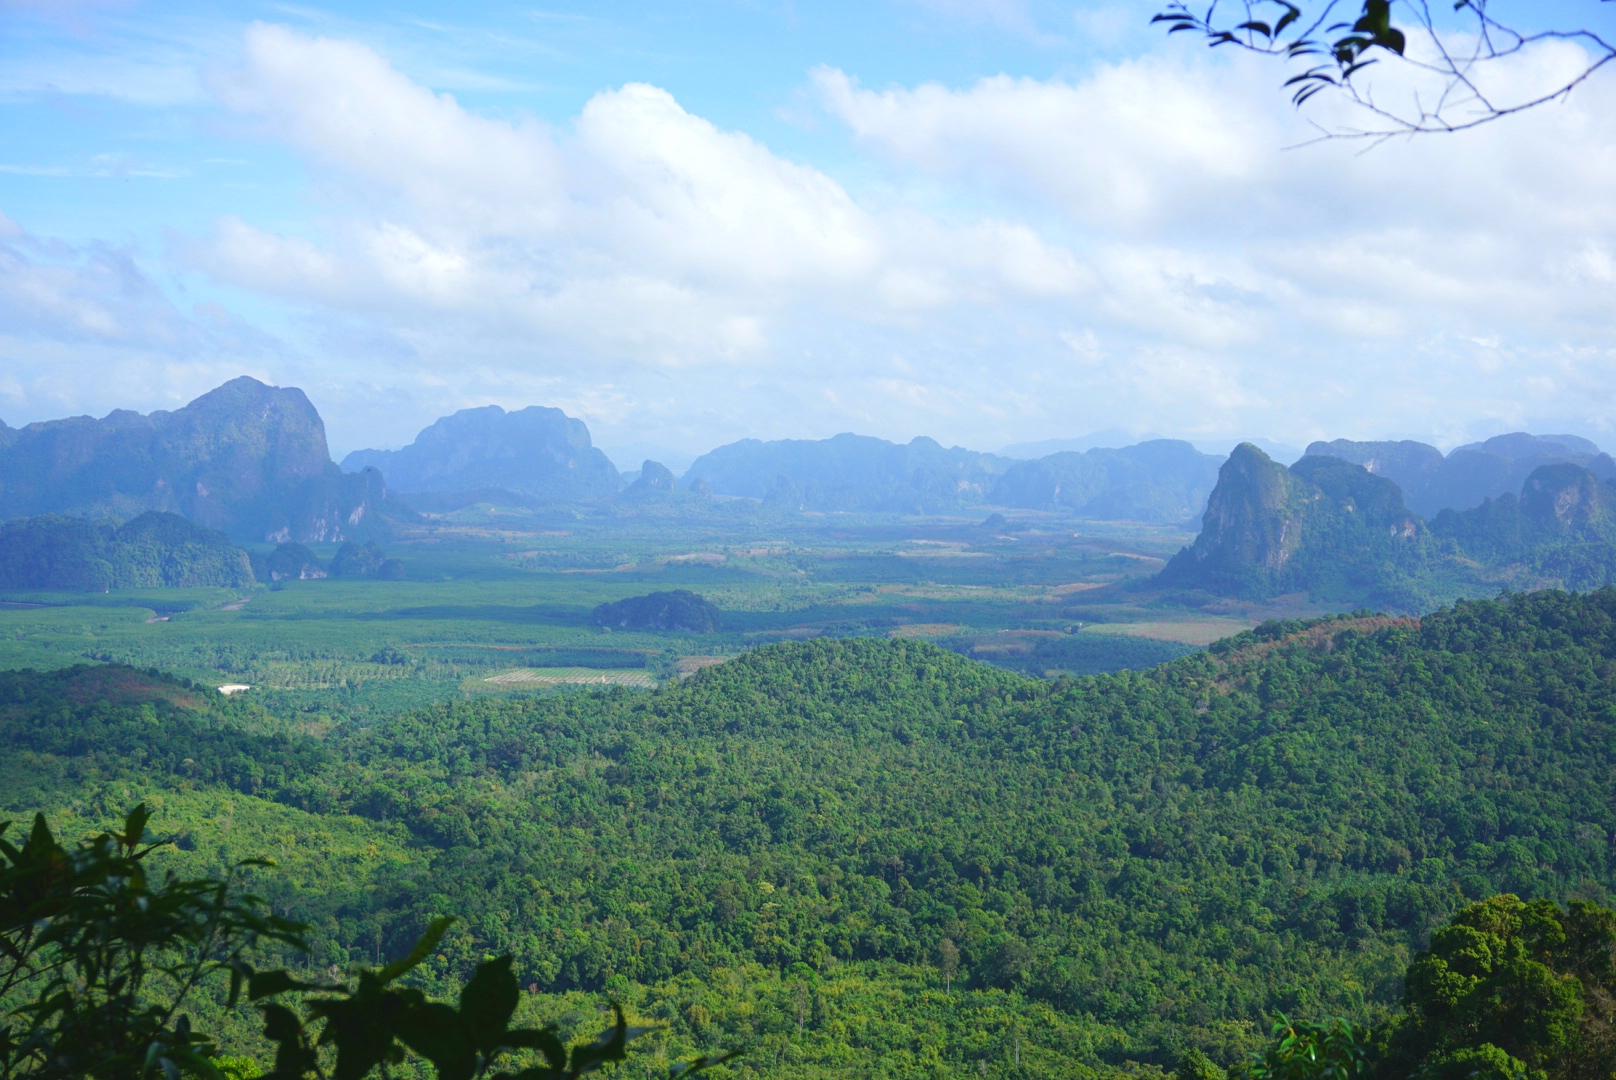 Viewpoint krabi dragon crest